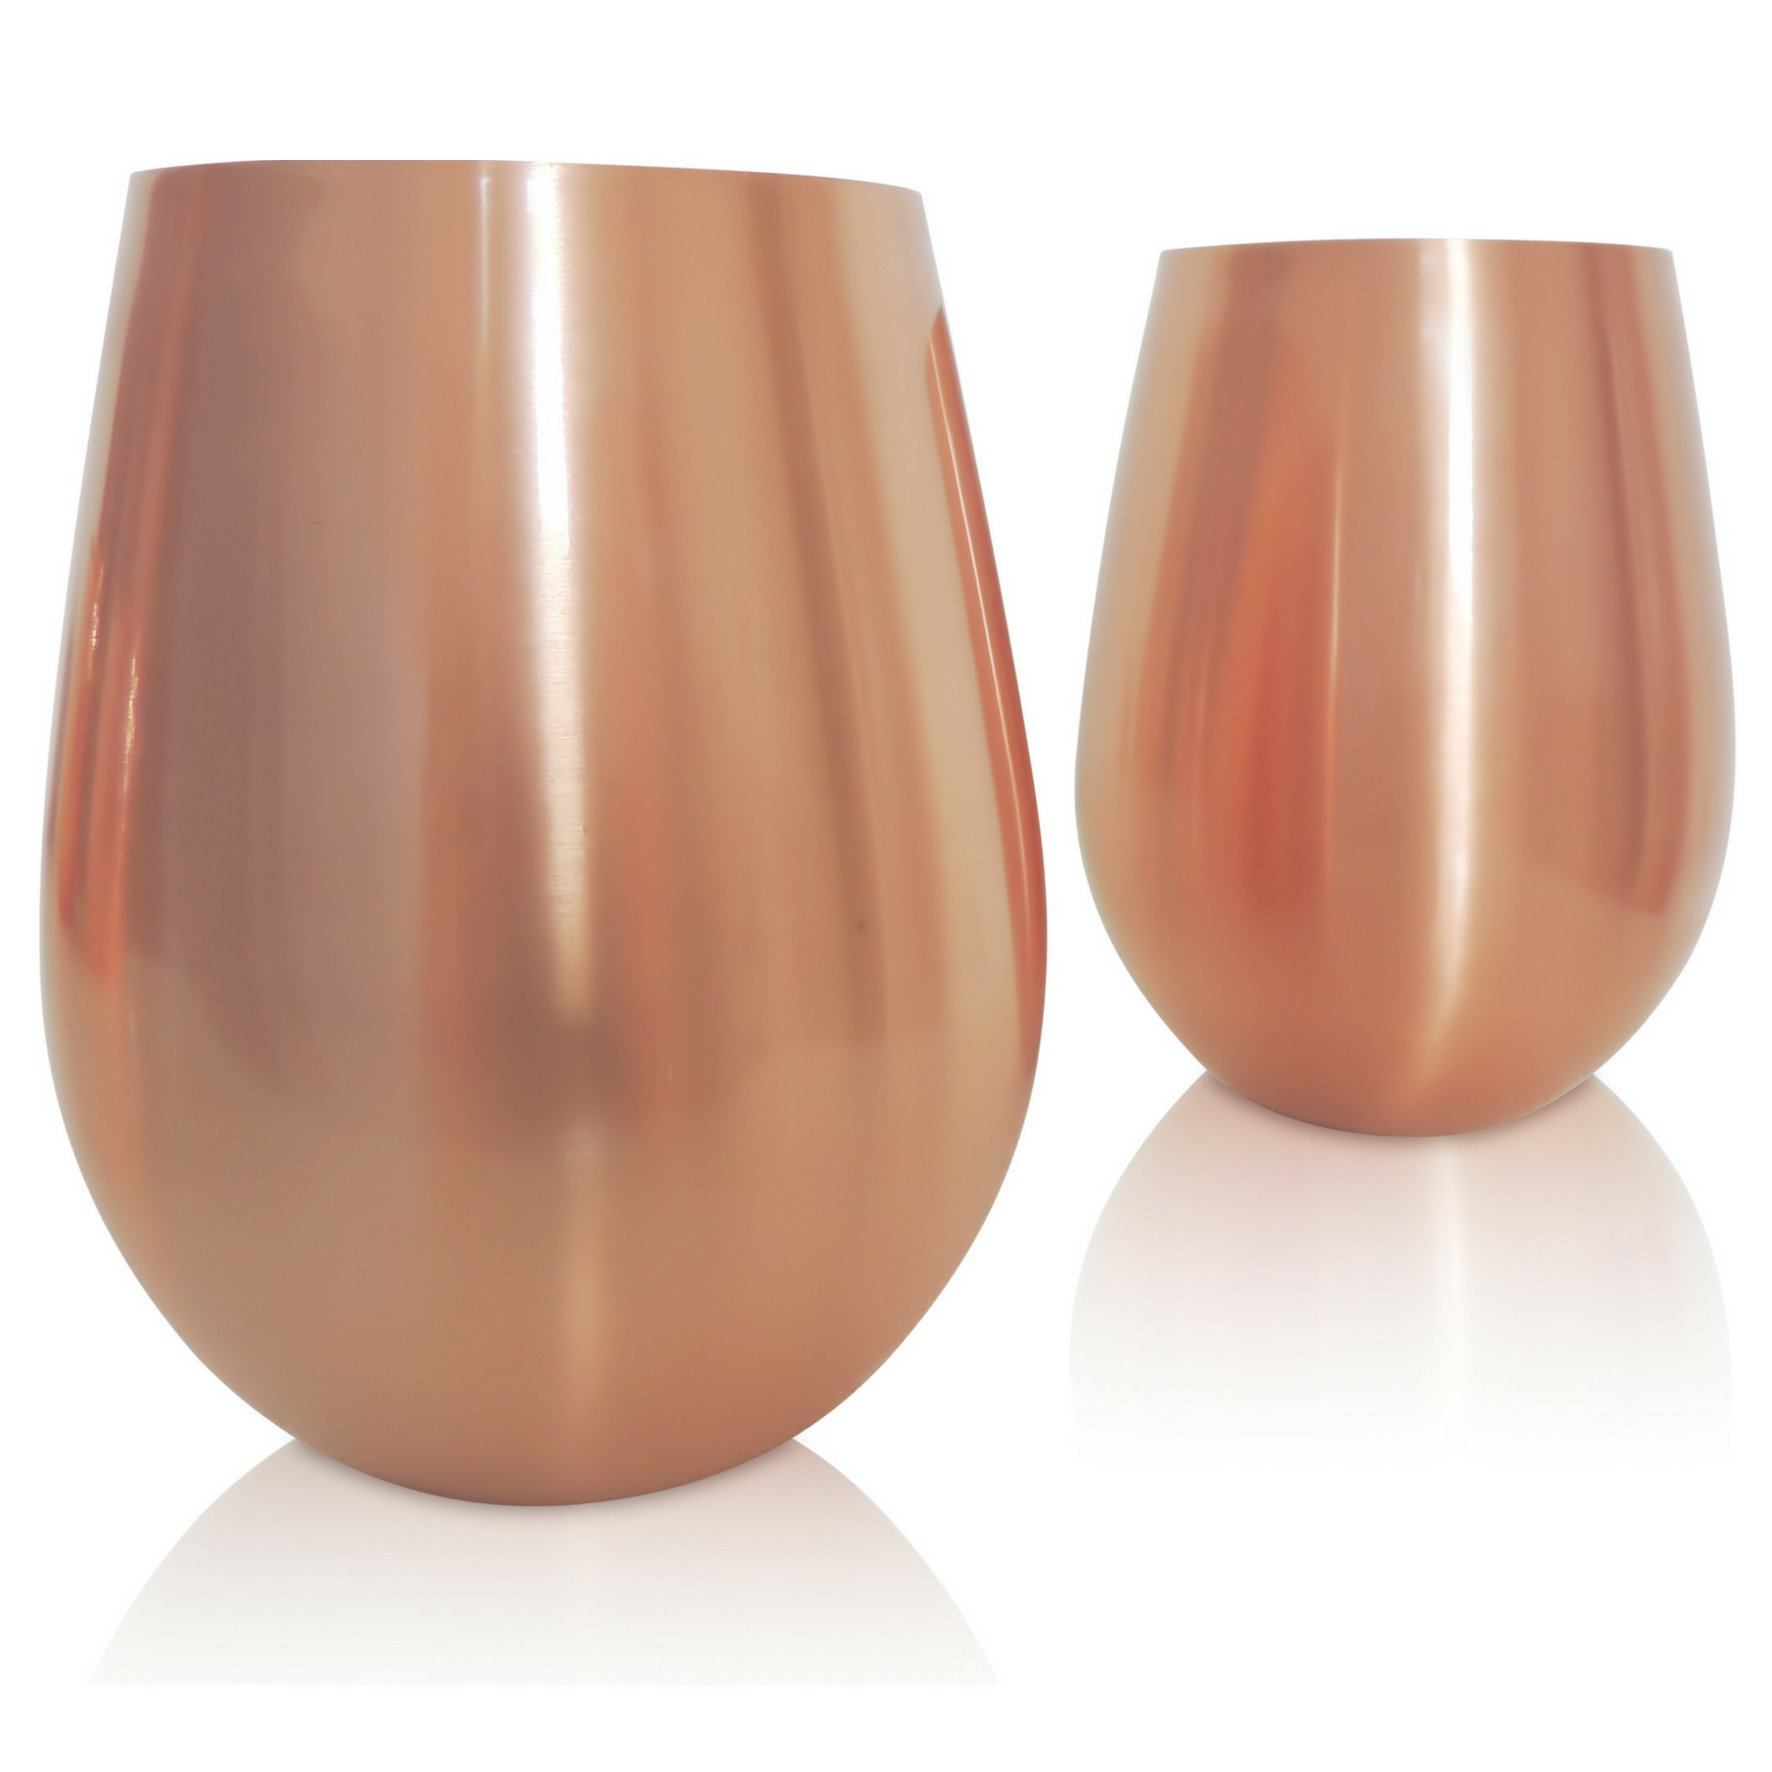 Stemless Copper Wine Glasses - Premium Set of 2 Stainless Steel - STRATFIELD HOME DESIGN - Sip your rosé in style